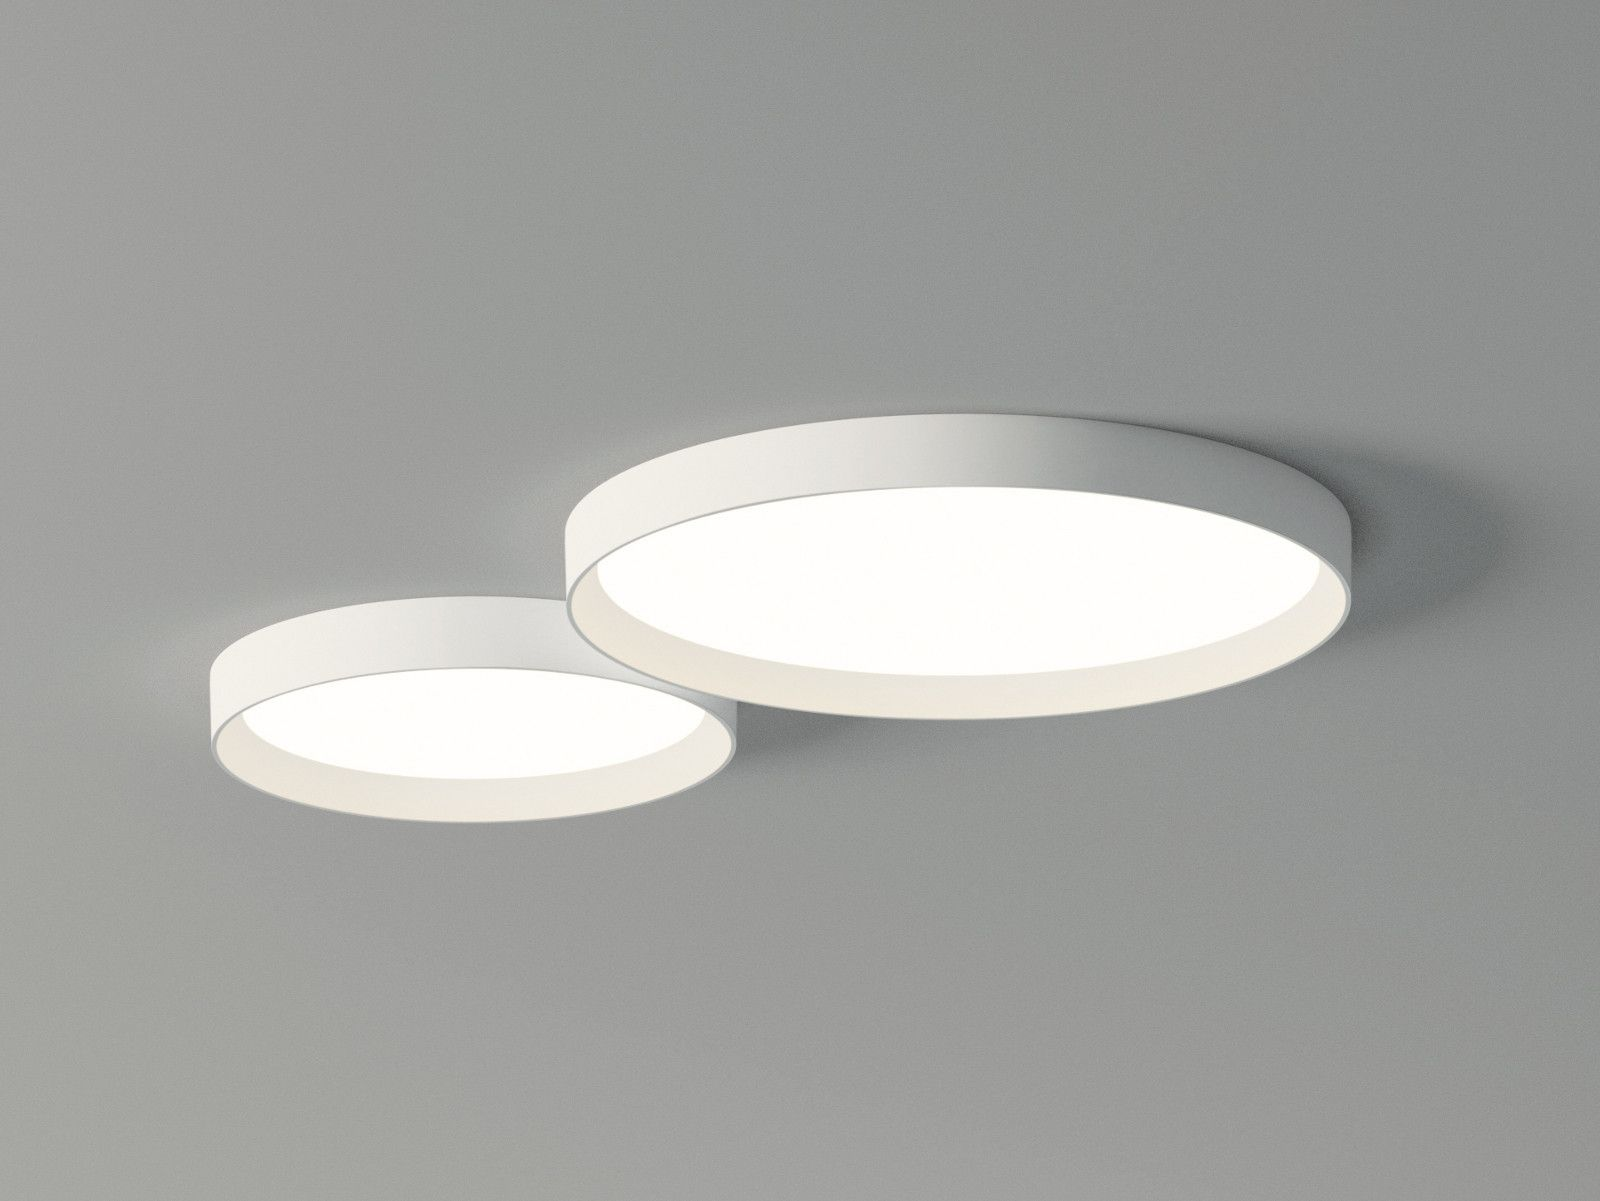 LED Deckenlampe UP 4442 by Vibia  Lampen  Led lampe kche Lampen decke und Led deckenlampen